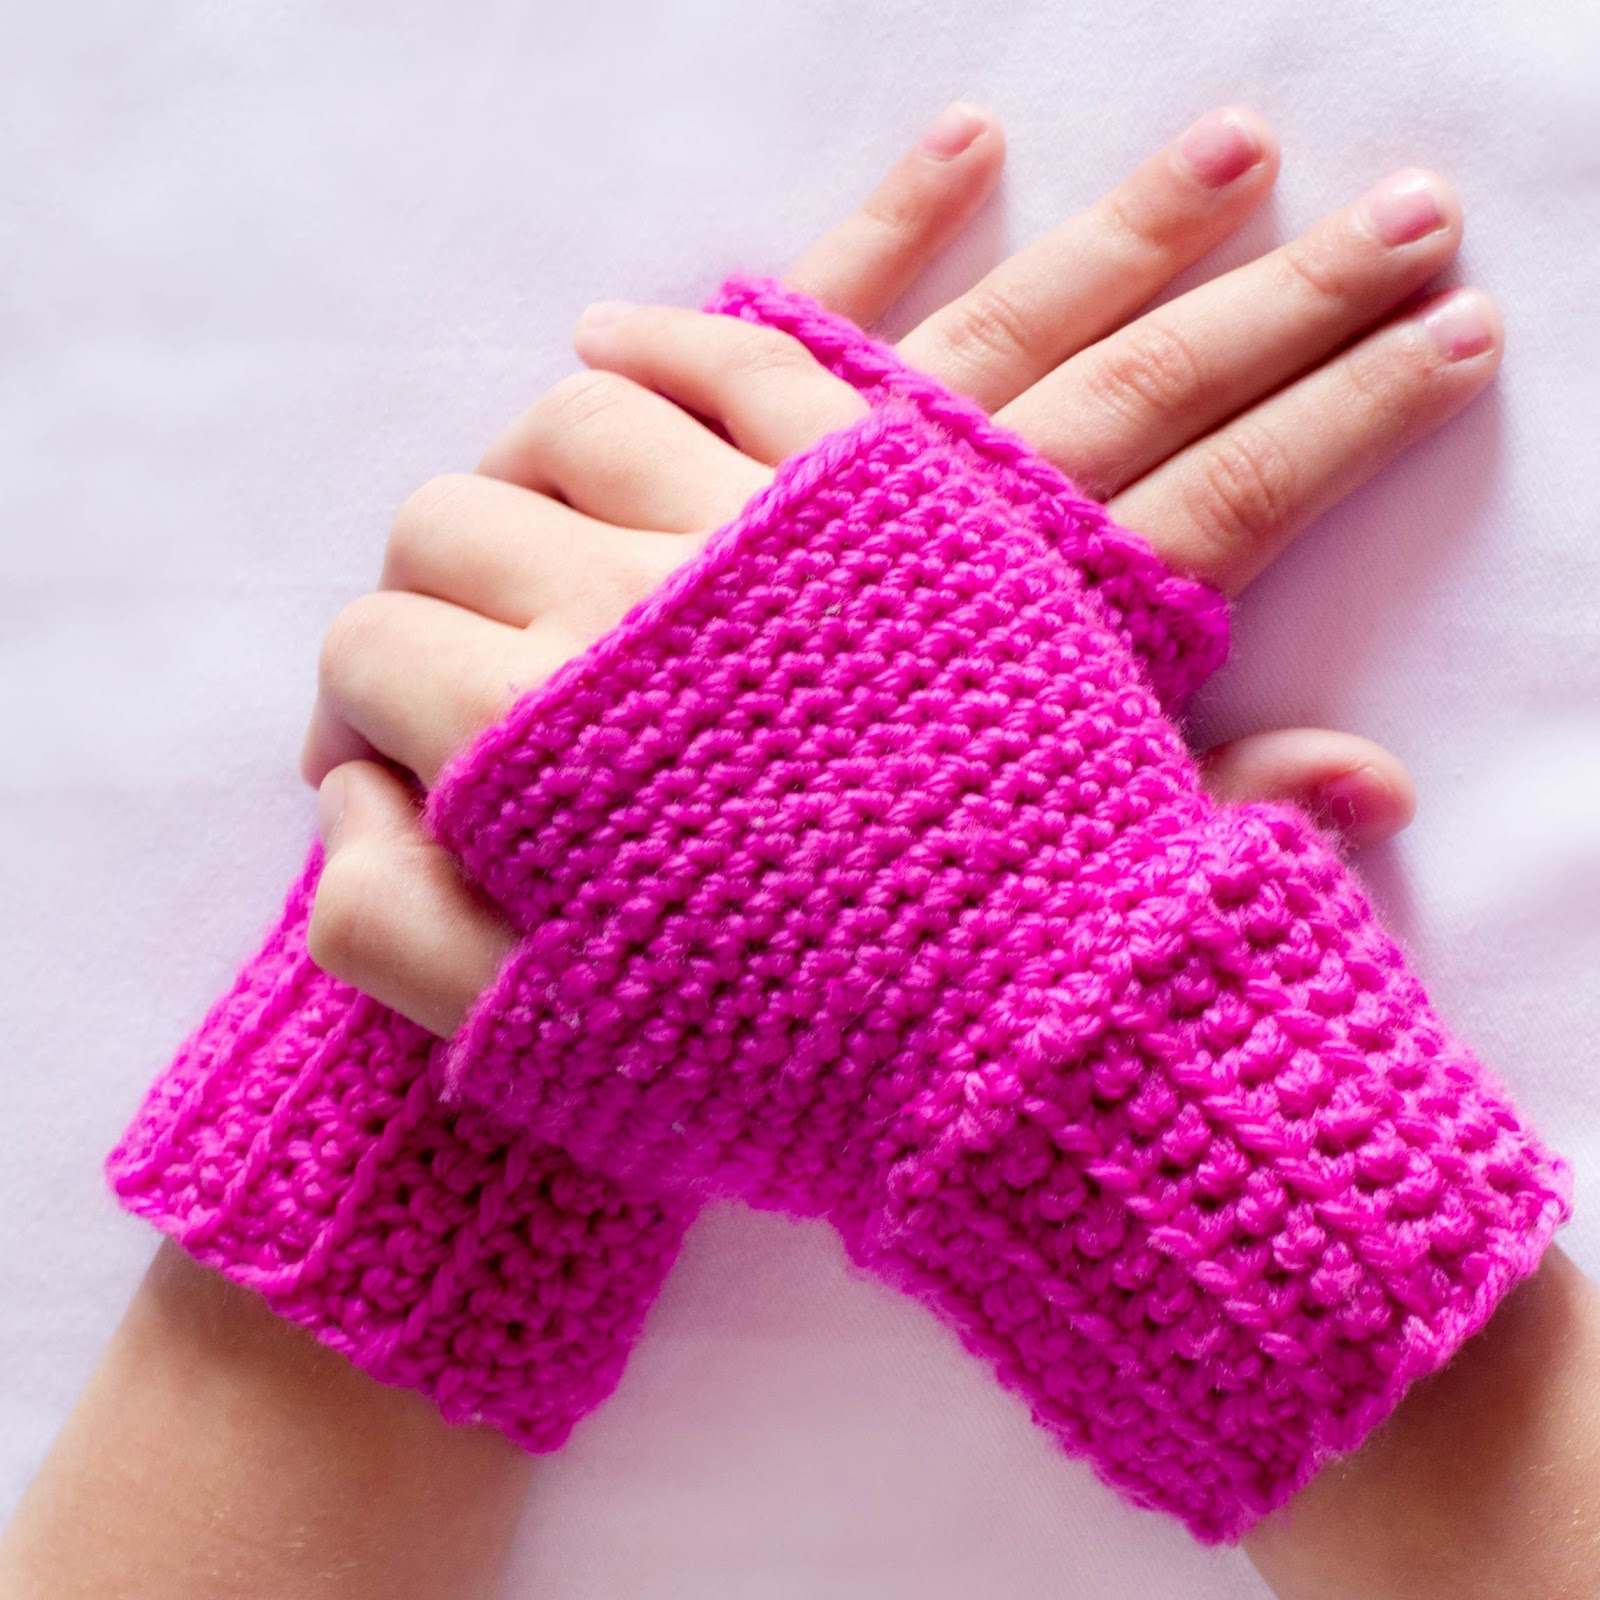 Crochet Gloves : ... Crochet, Create: Princess In Pink ~ Basic Fingerless Gloves Crochet